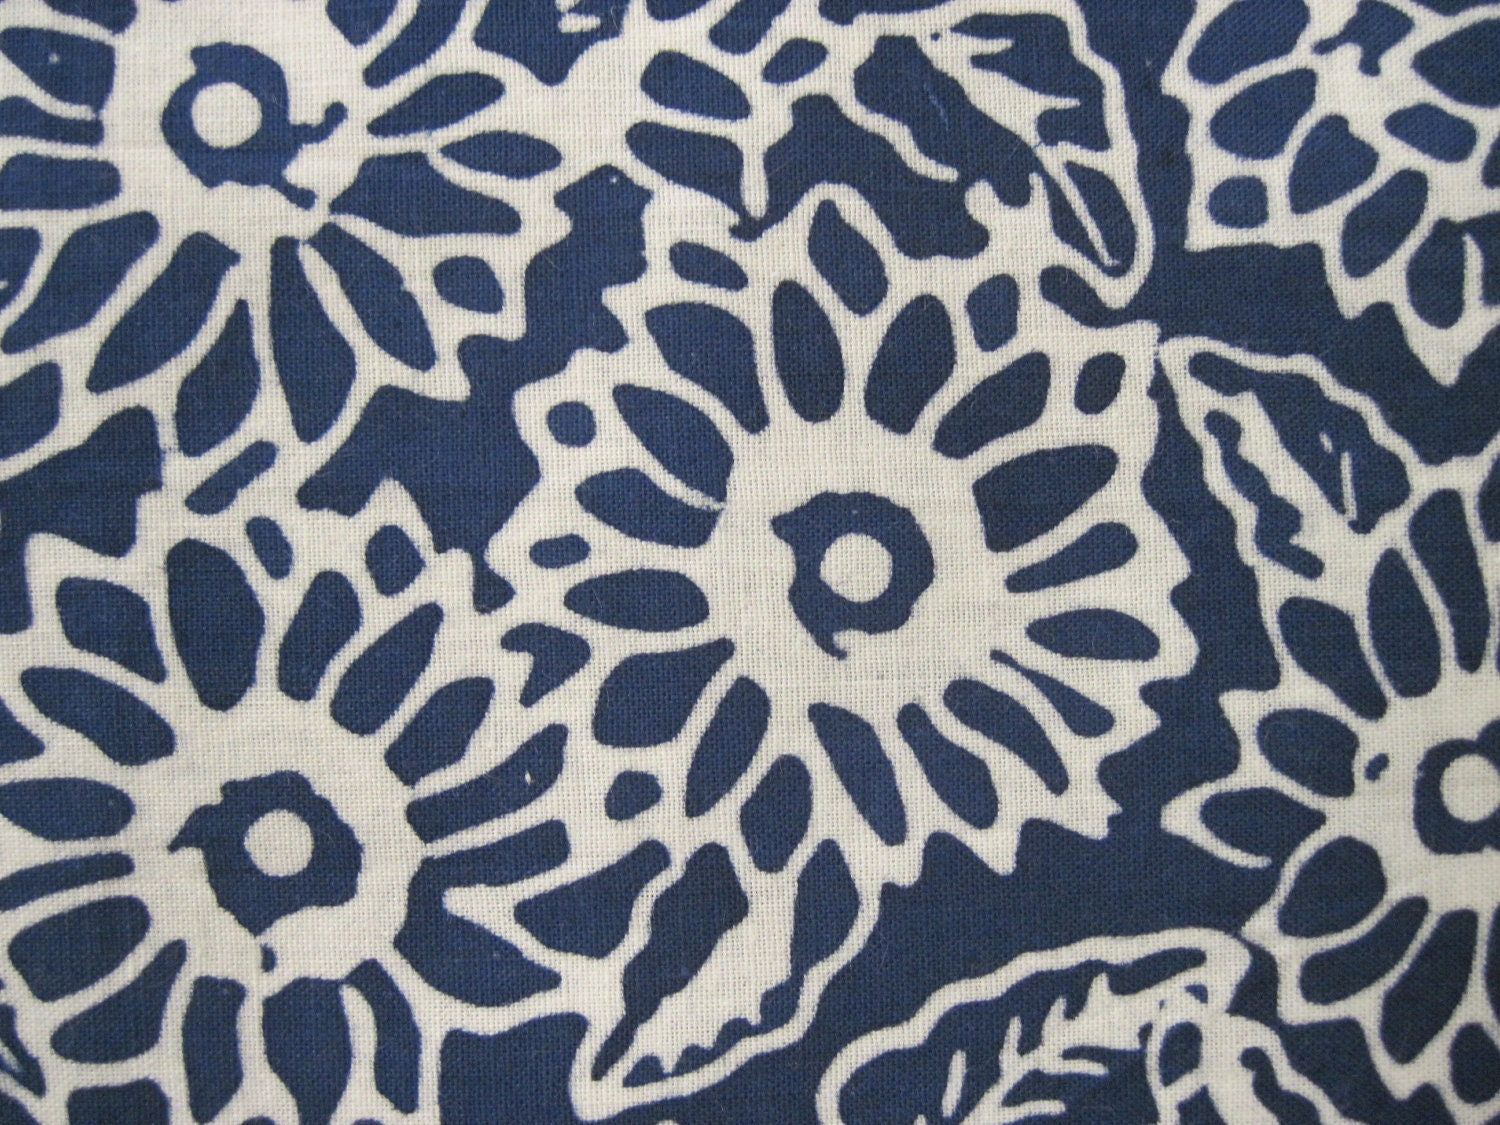 blue and white floral batik print fabric 1yd by seams4ever on etsy. Black Bedroom Furniture Sets. Home Design Ideas